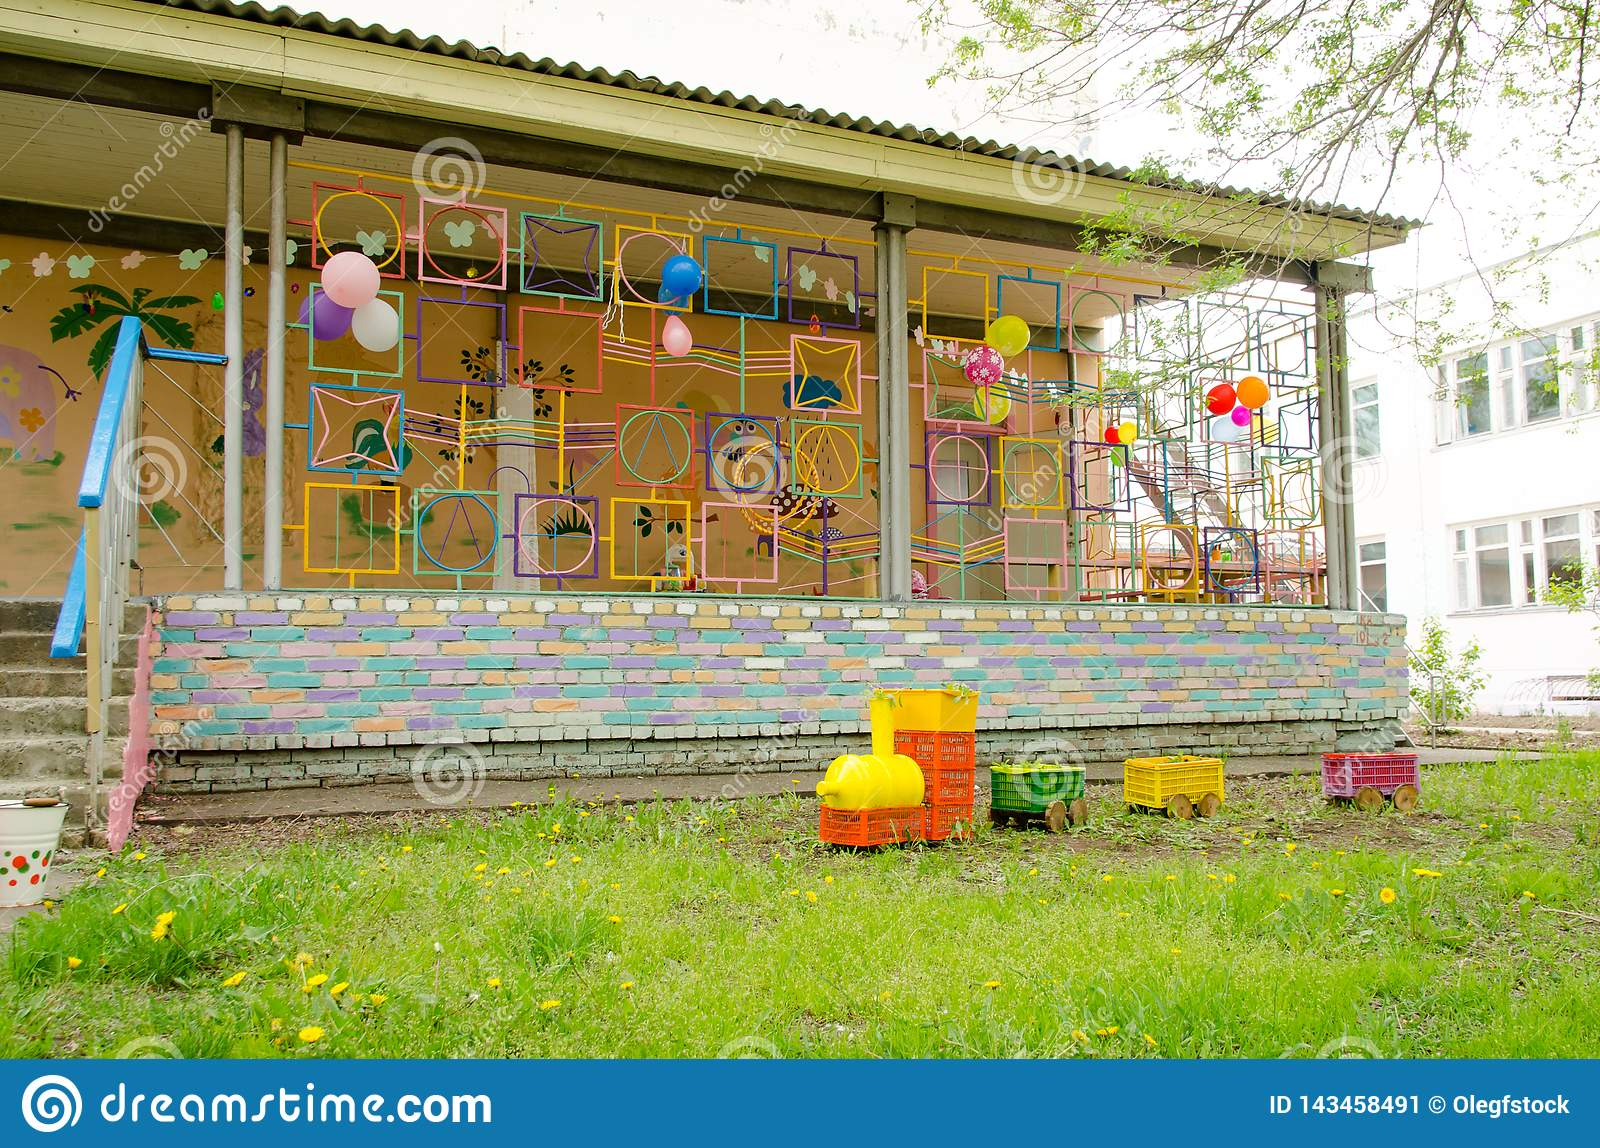 Steam locomotive made of plastic boxes and bottles on lawn next to terrace on playground